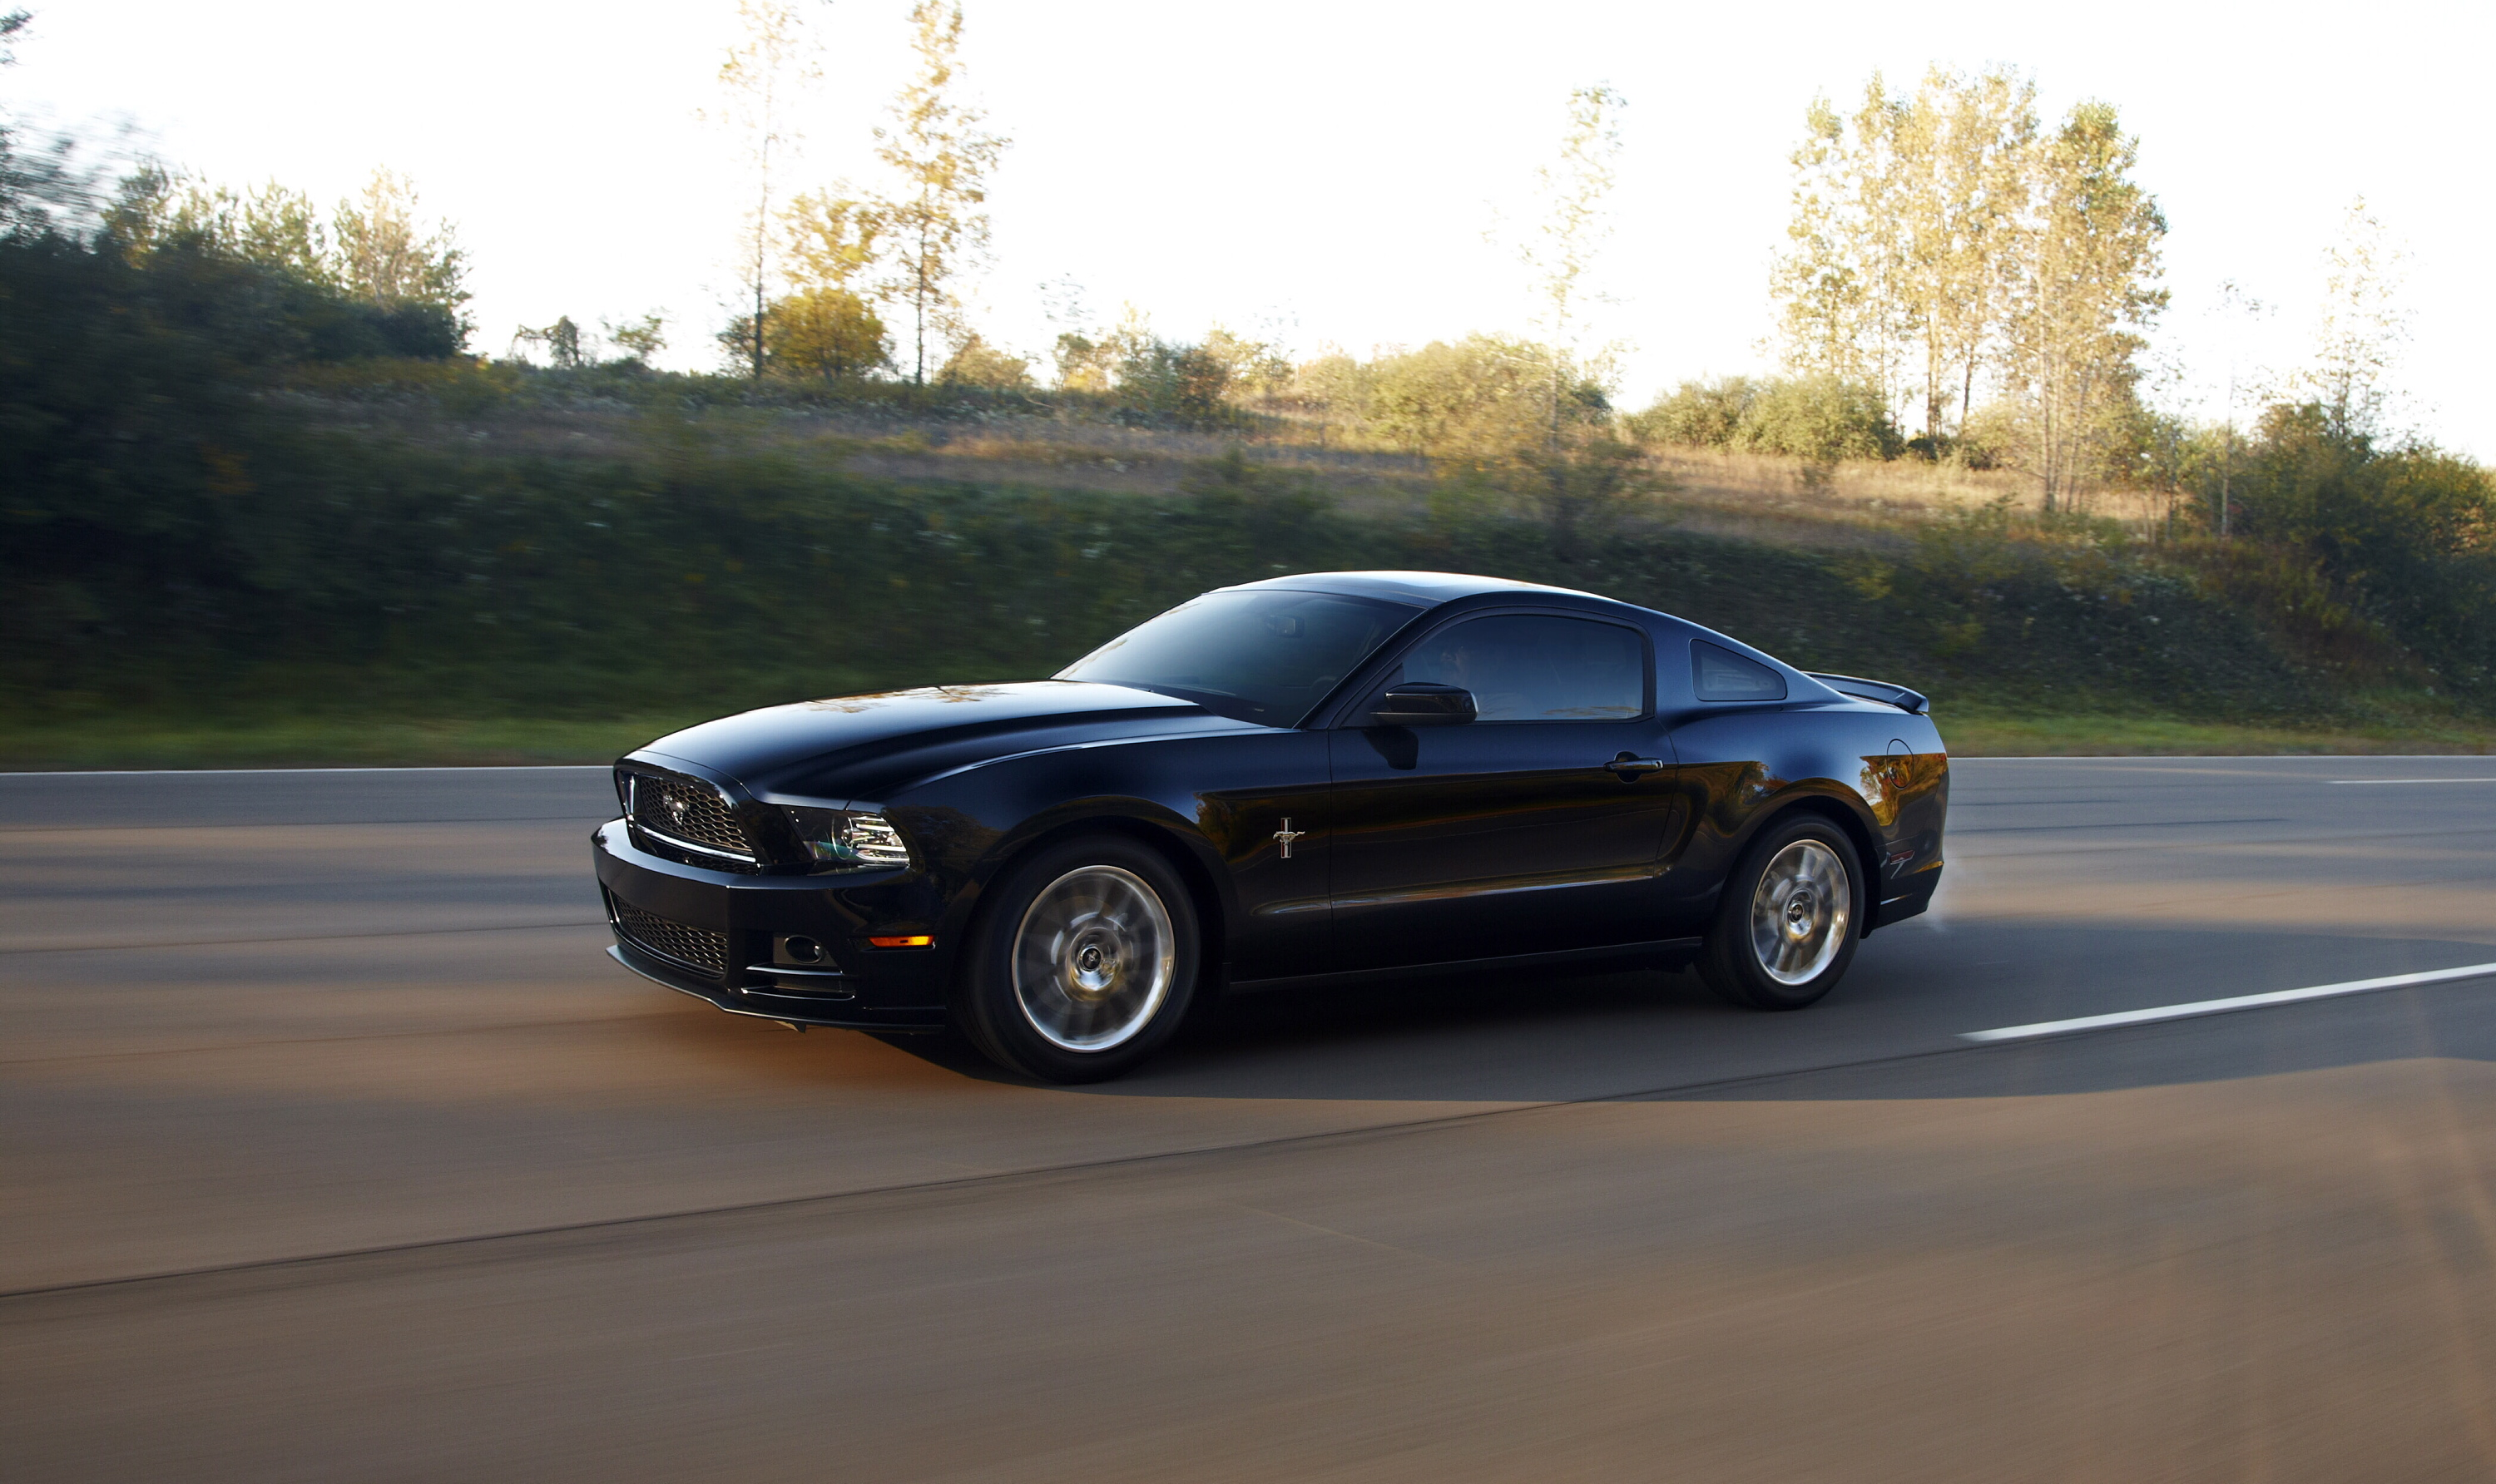 2013 Ford Mustang #17